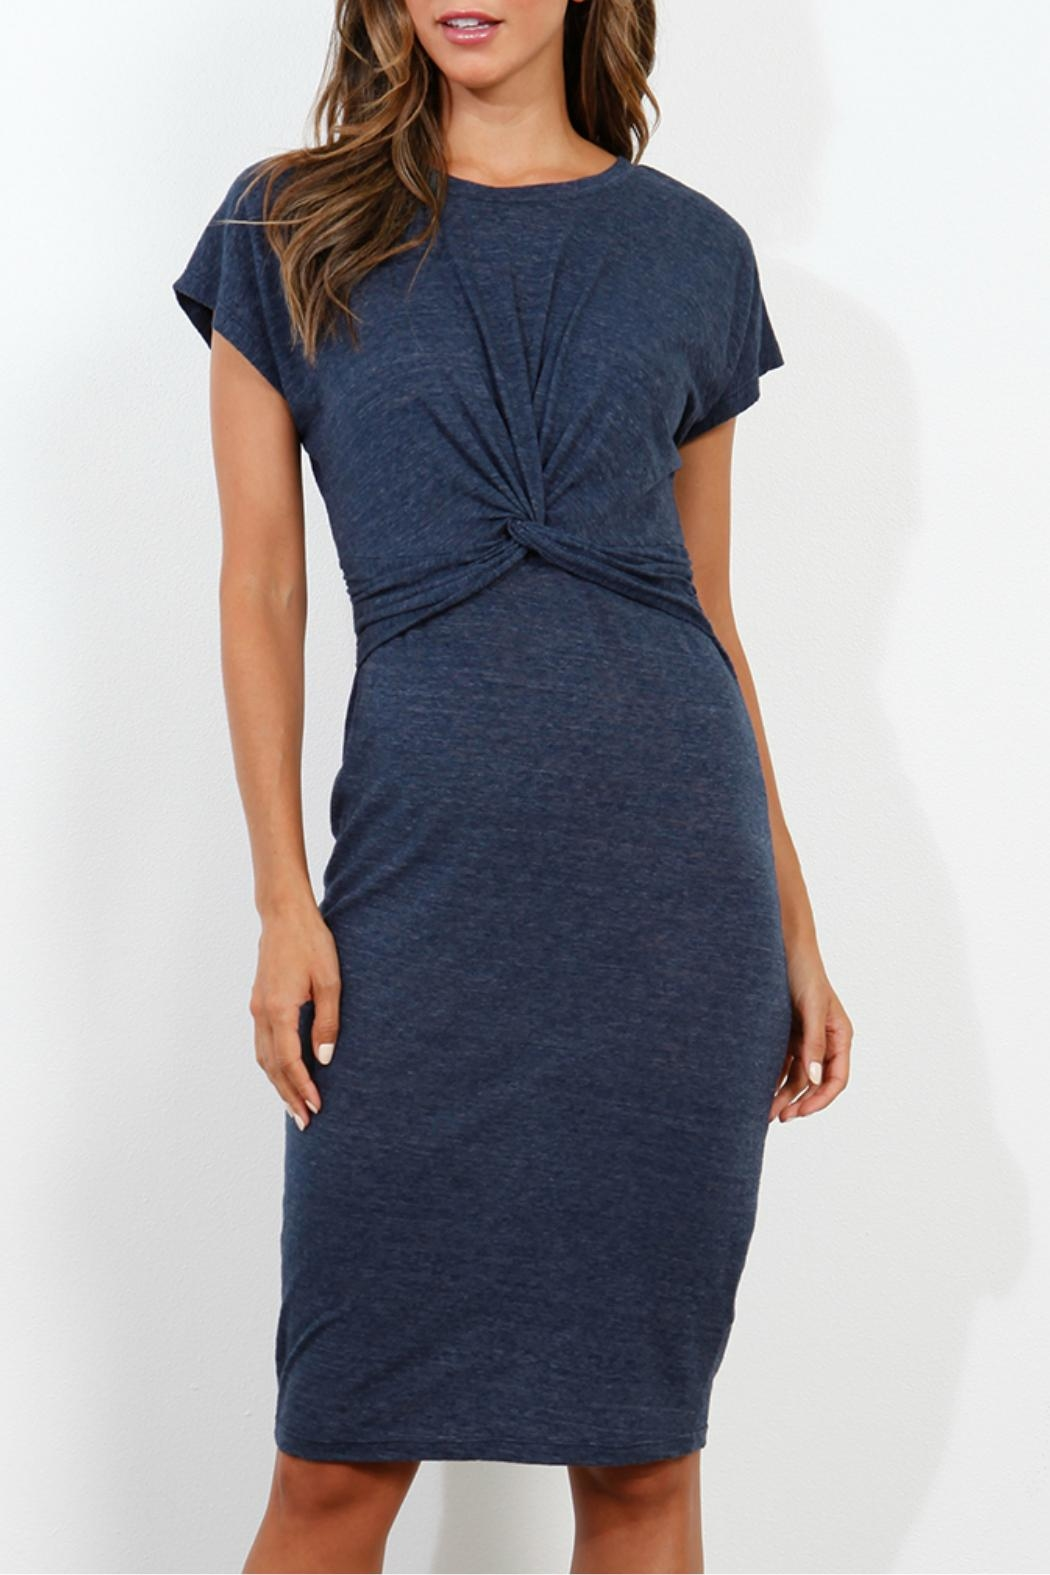 Three Dots Knotted Front Dress - Main Image